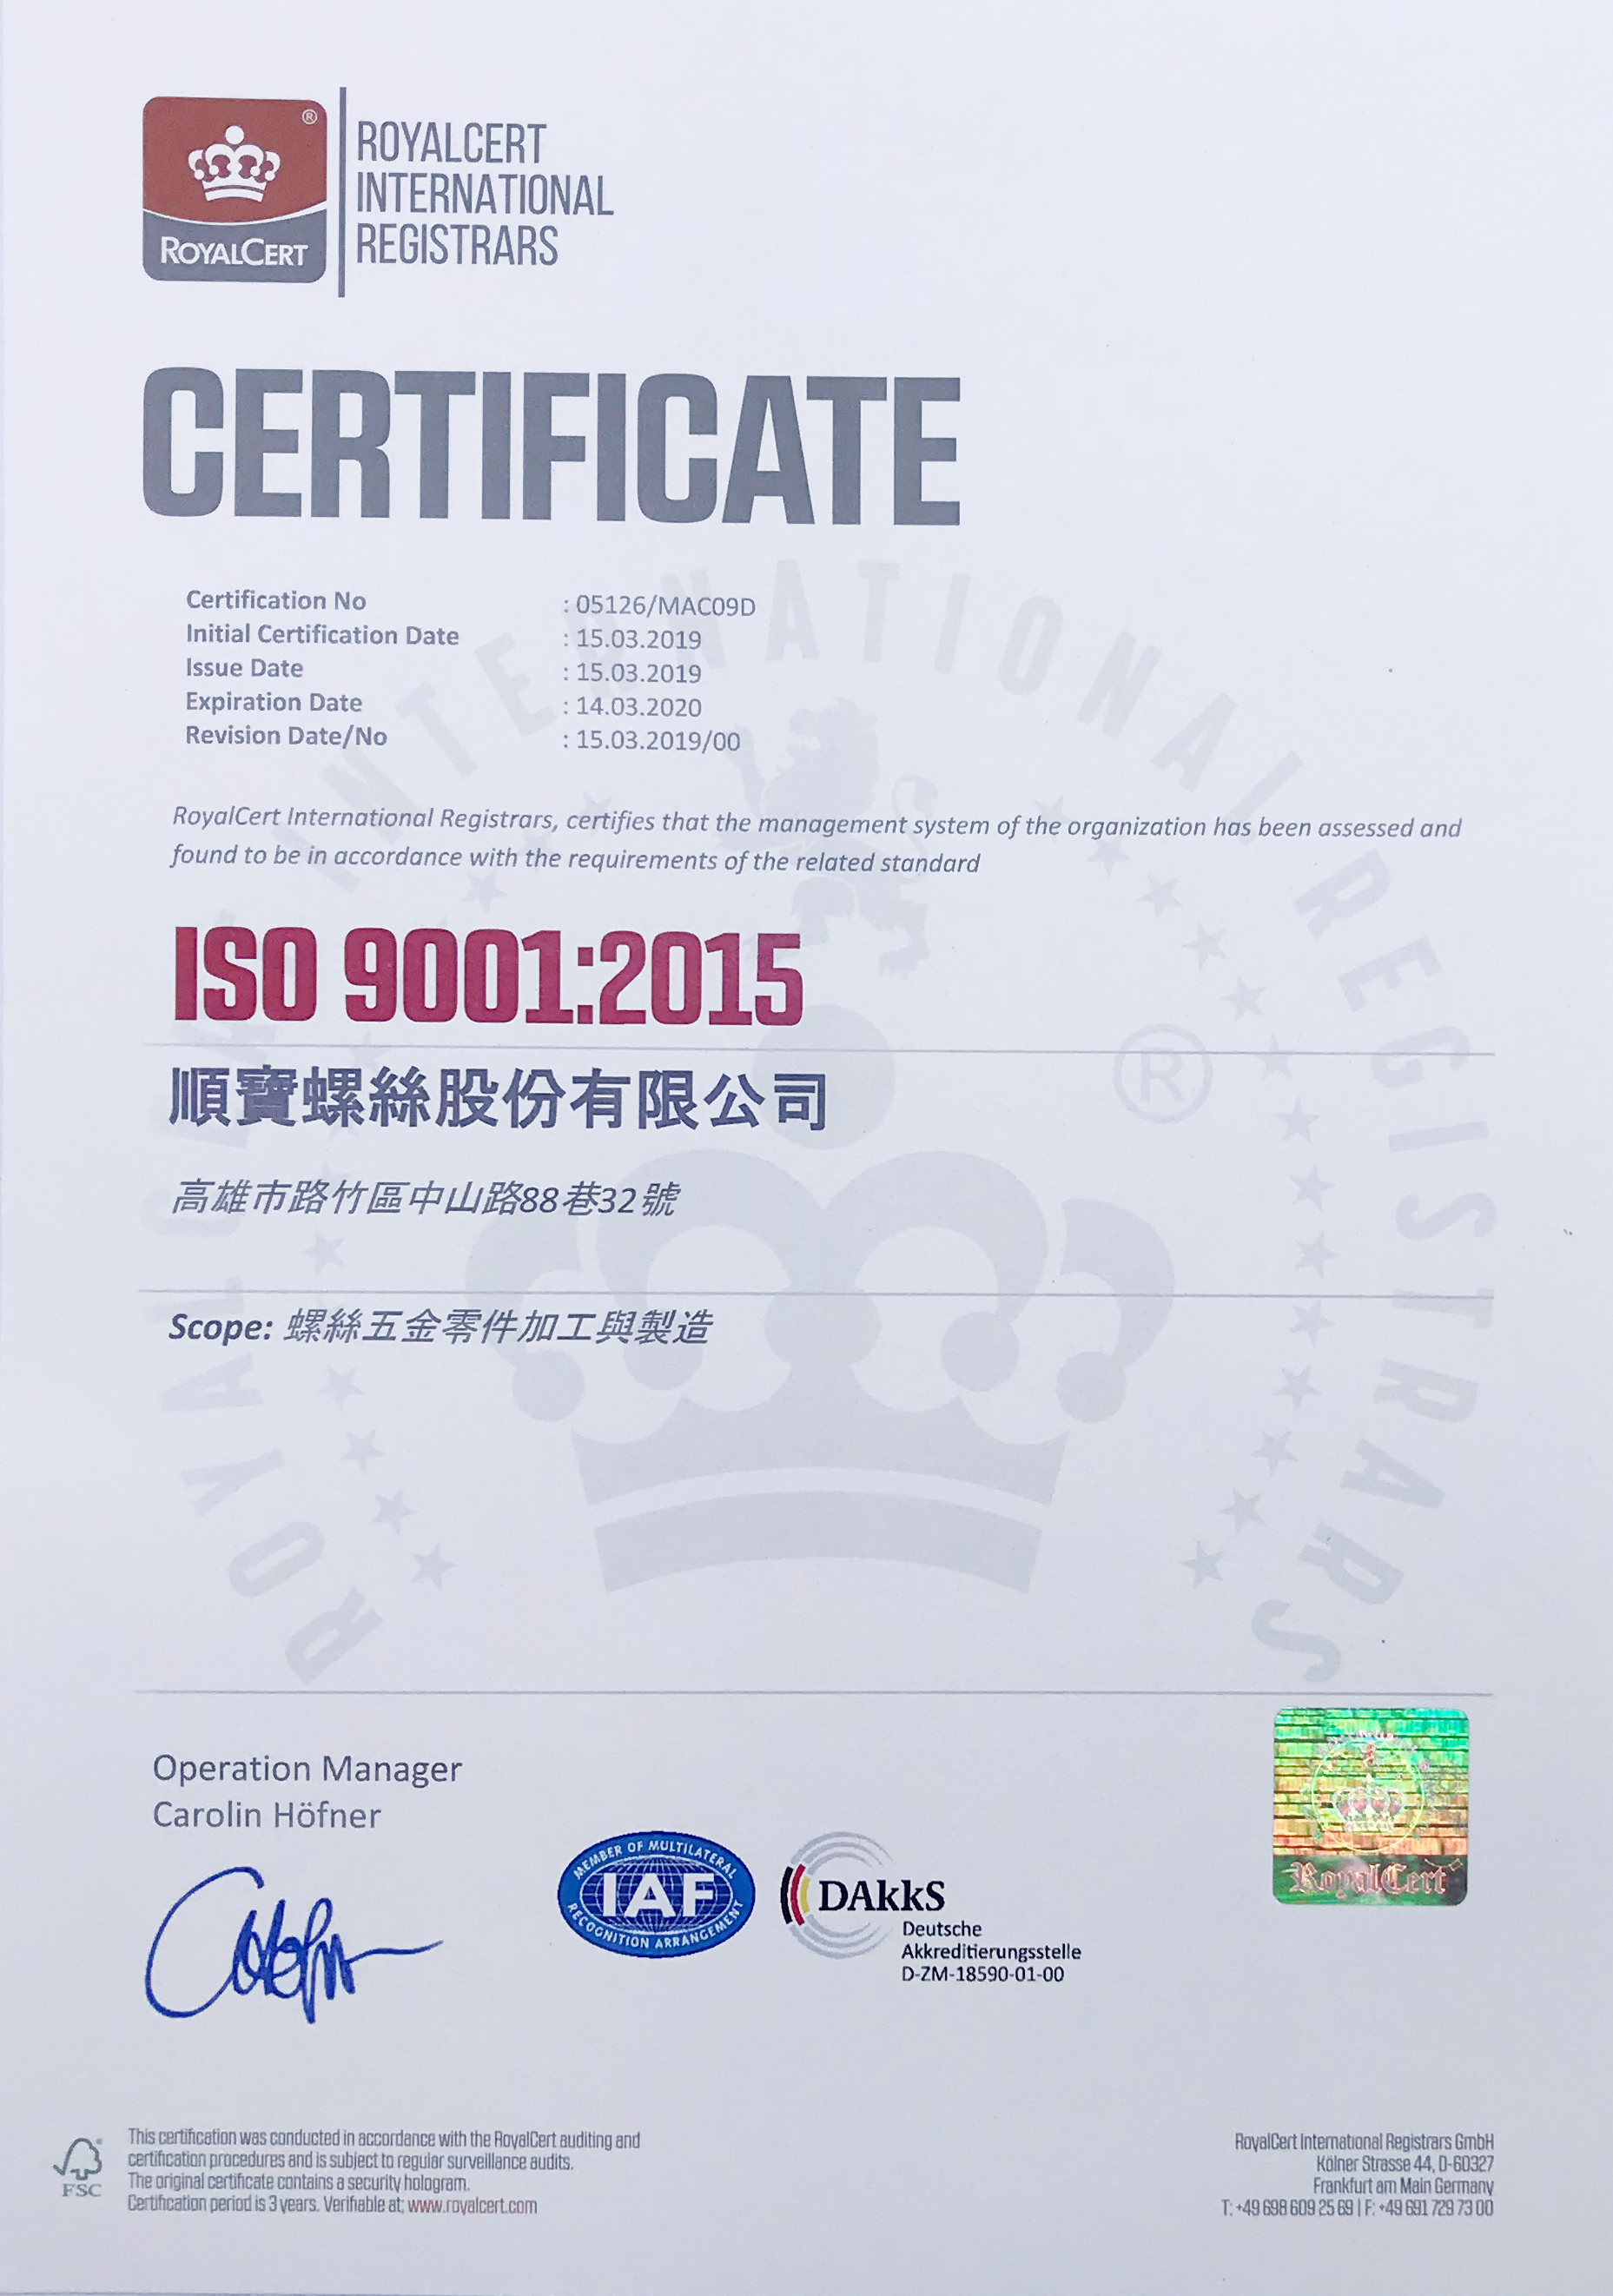 We obtained ISO 9001:2015 CERTIFICATION